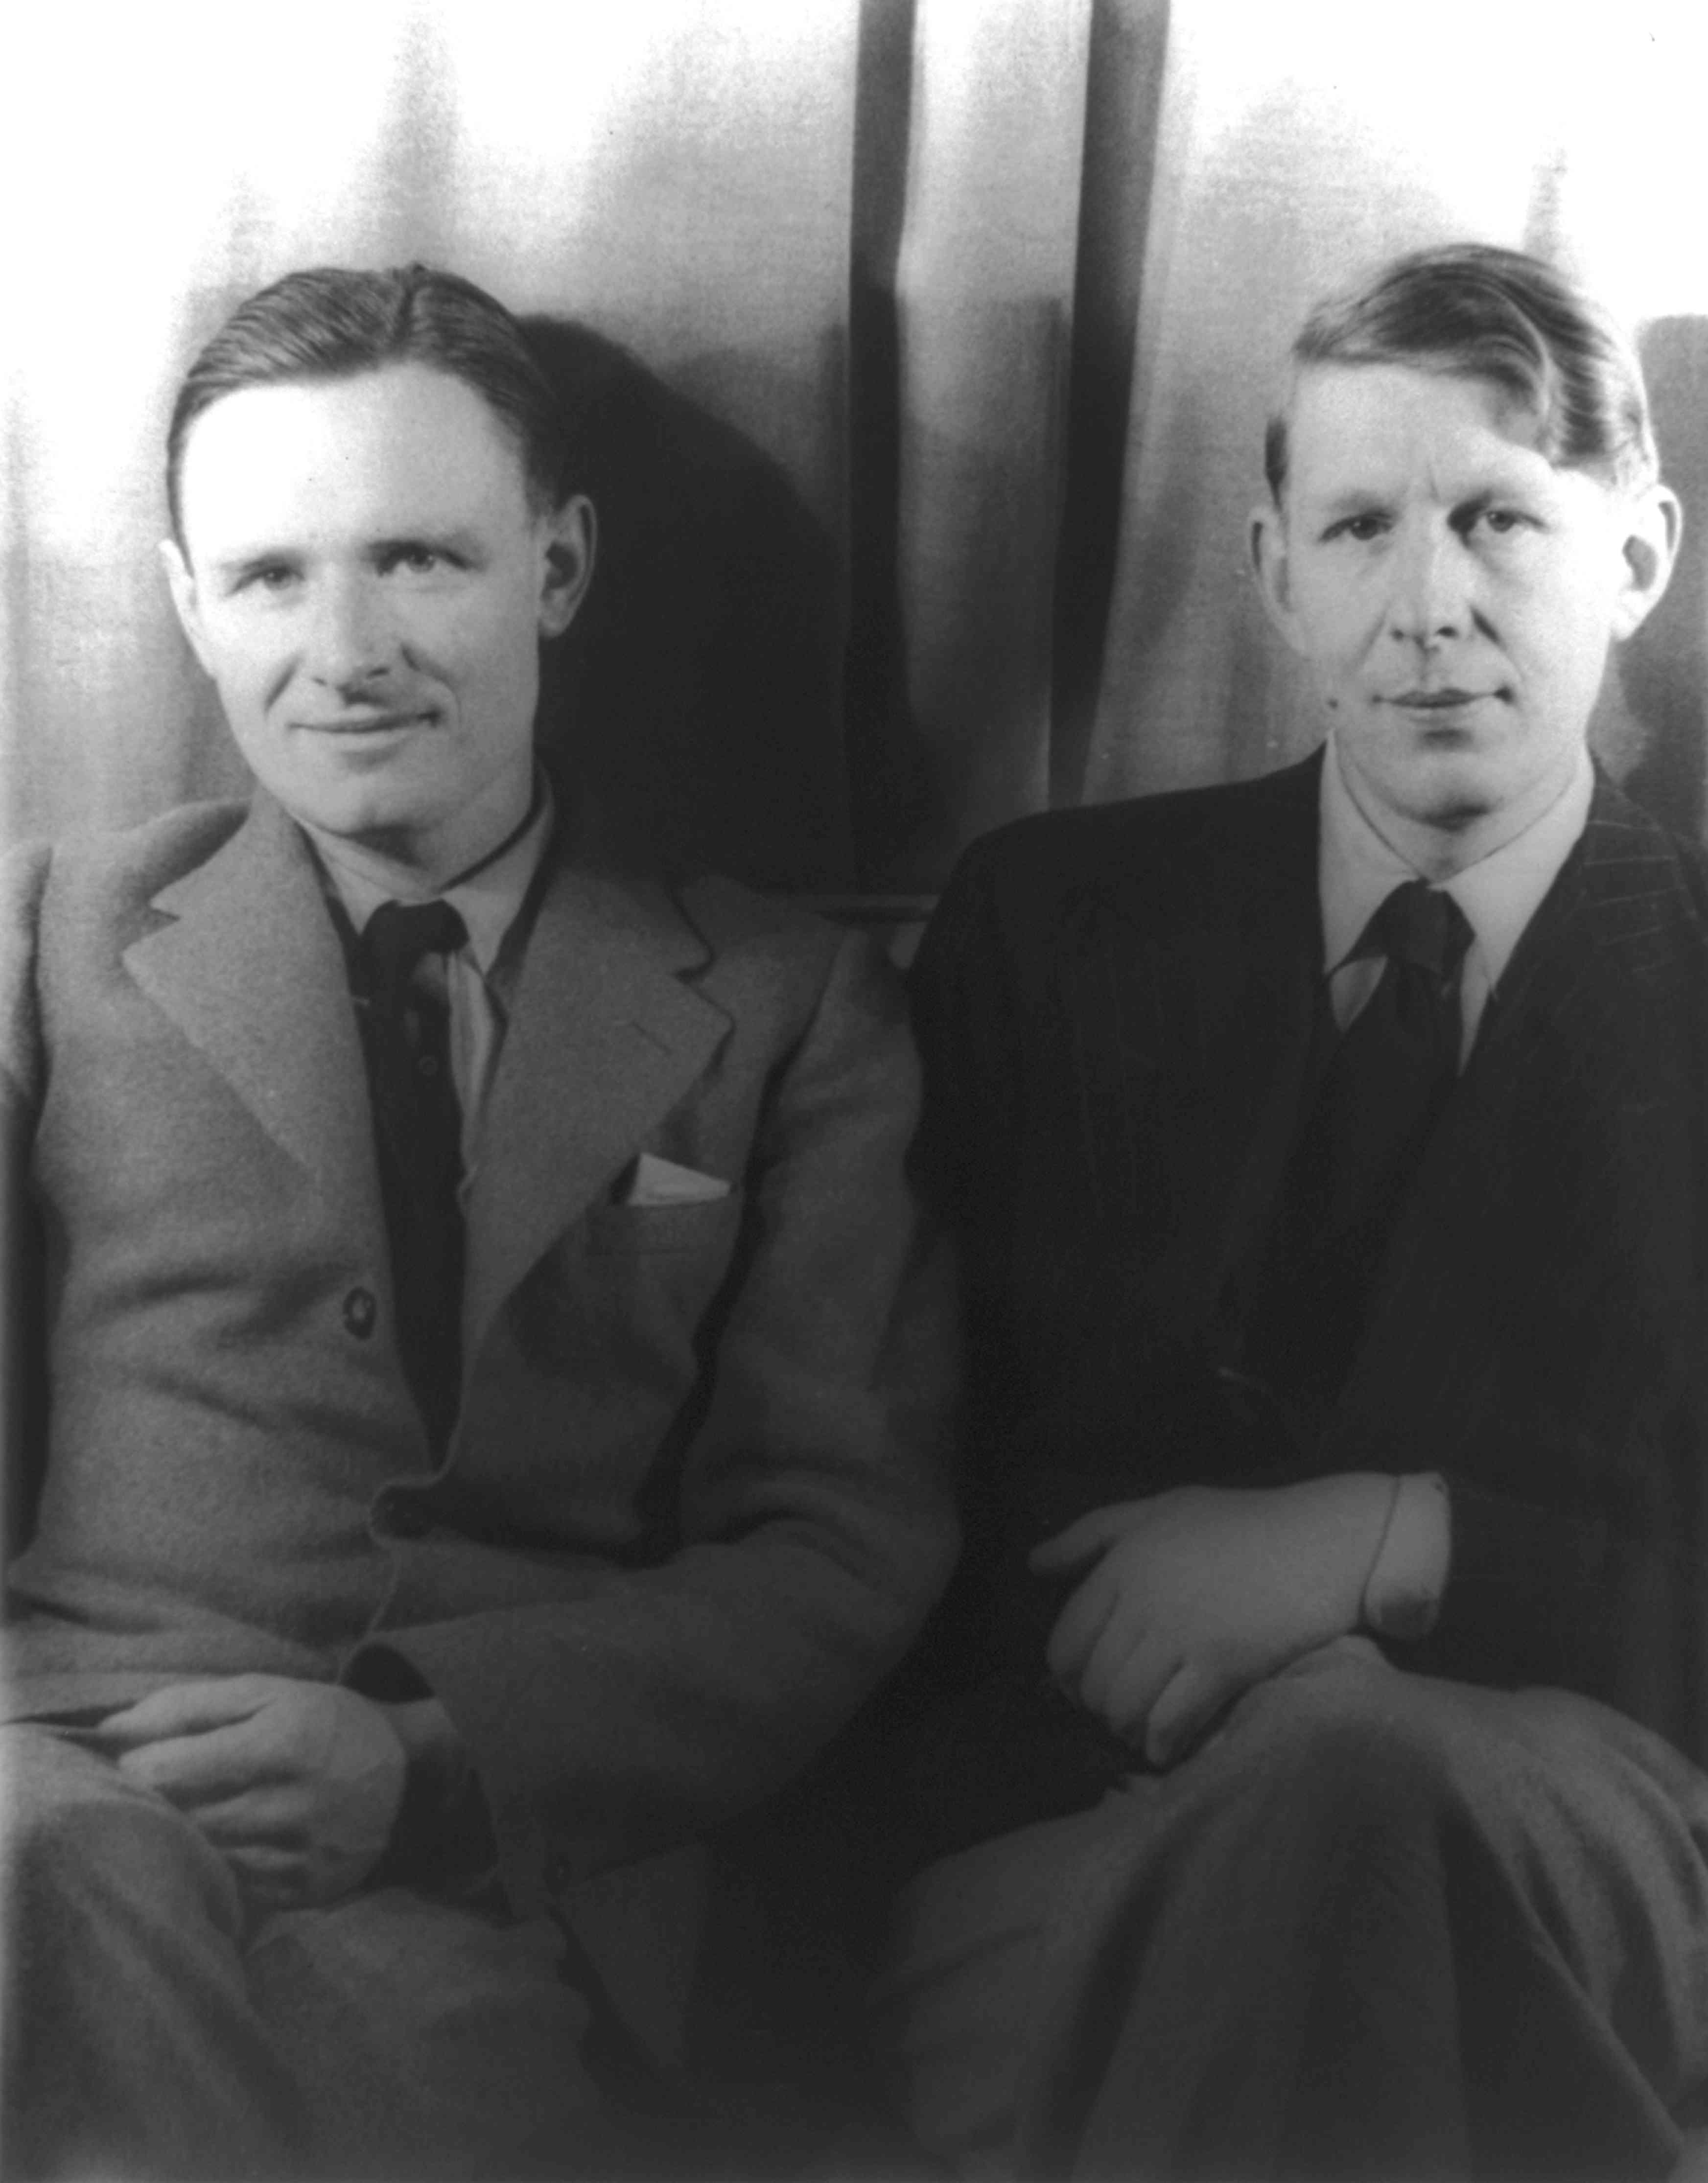 Portrait of Christopher Isherwood and W.H. Auden